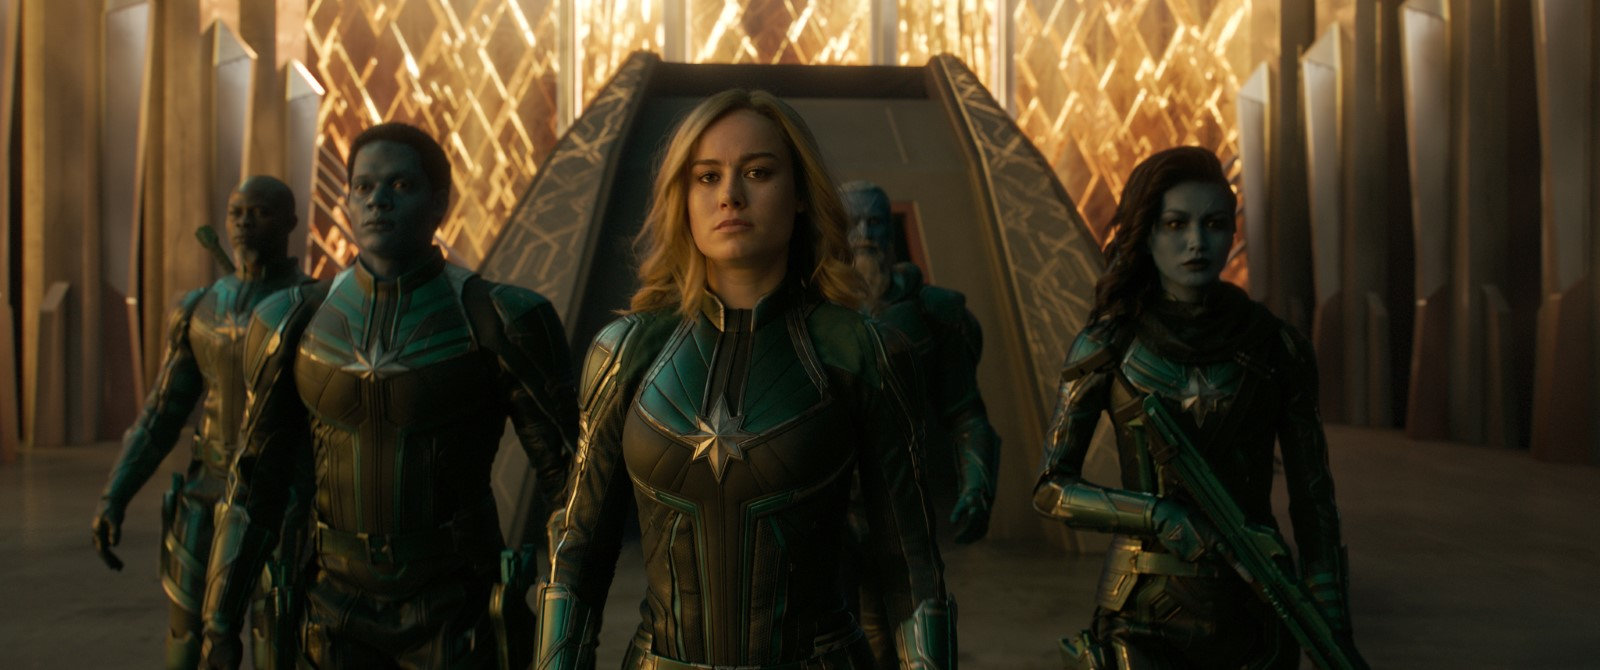 Sorties Ciné : Captain Marvel